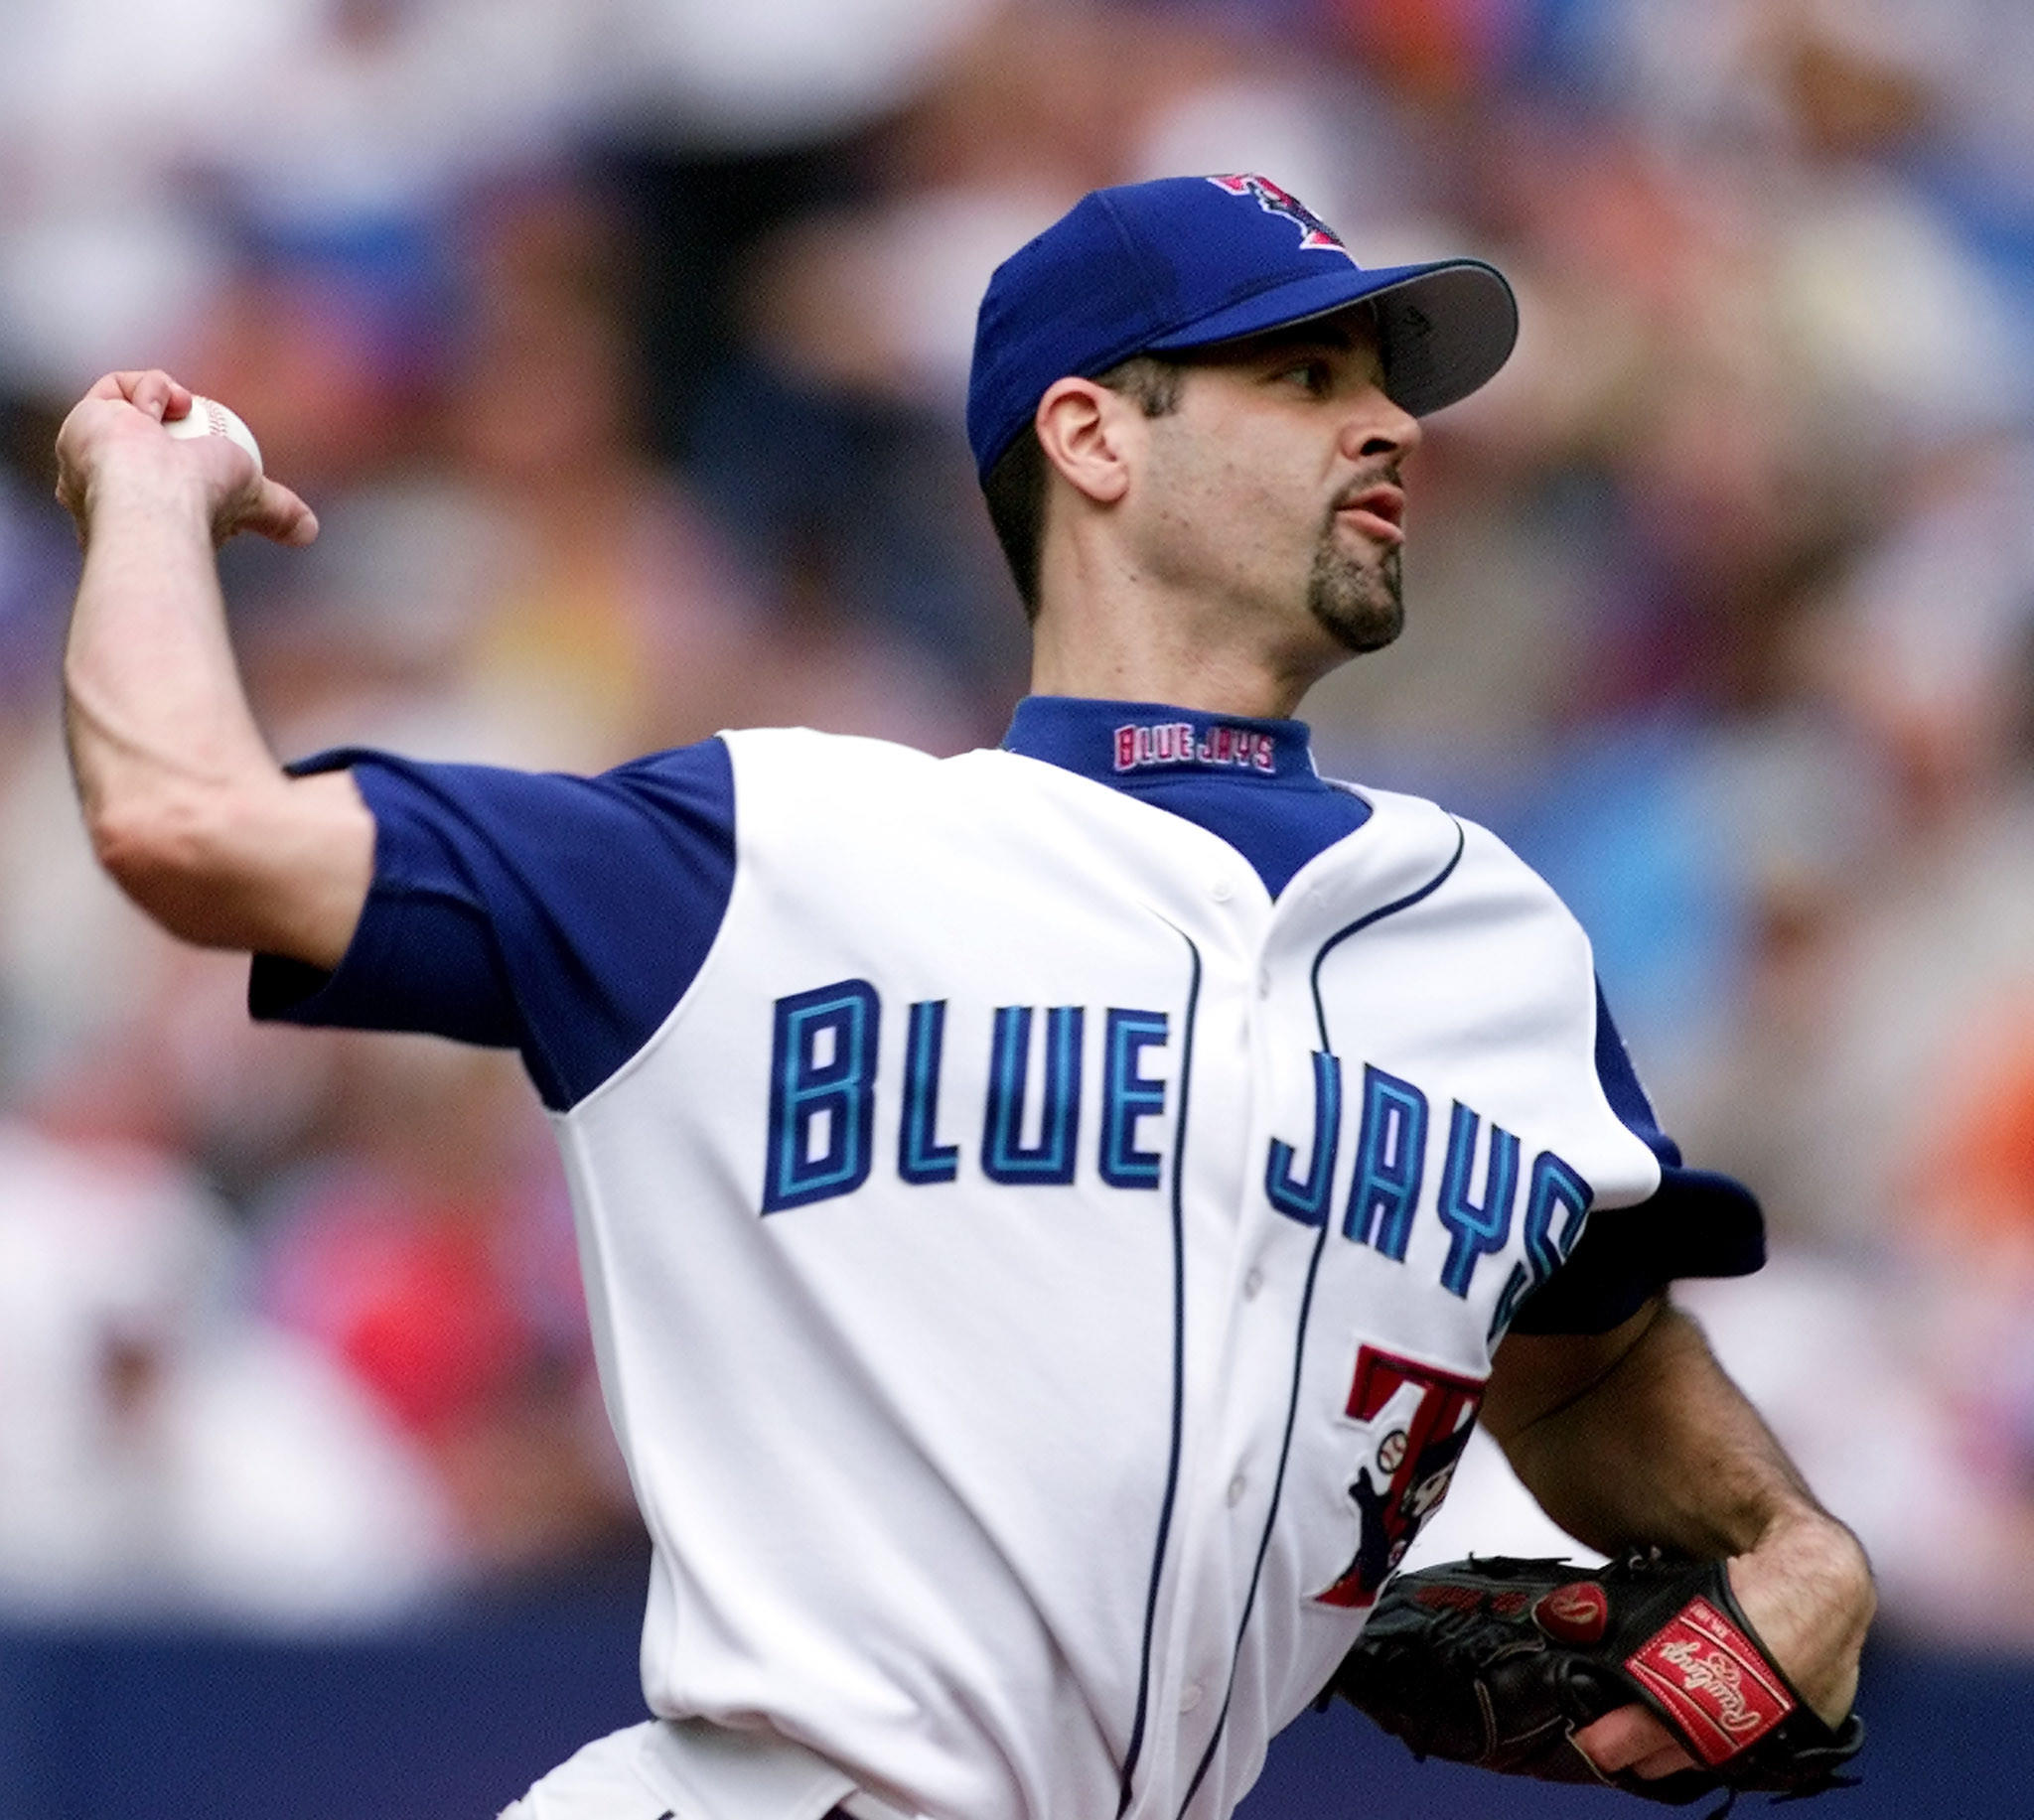 Pete Walker in a 2002 file photo, when he pitched for the Toronto Blue Jays.